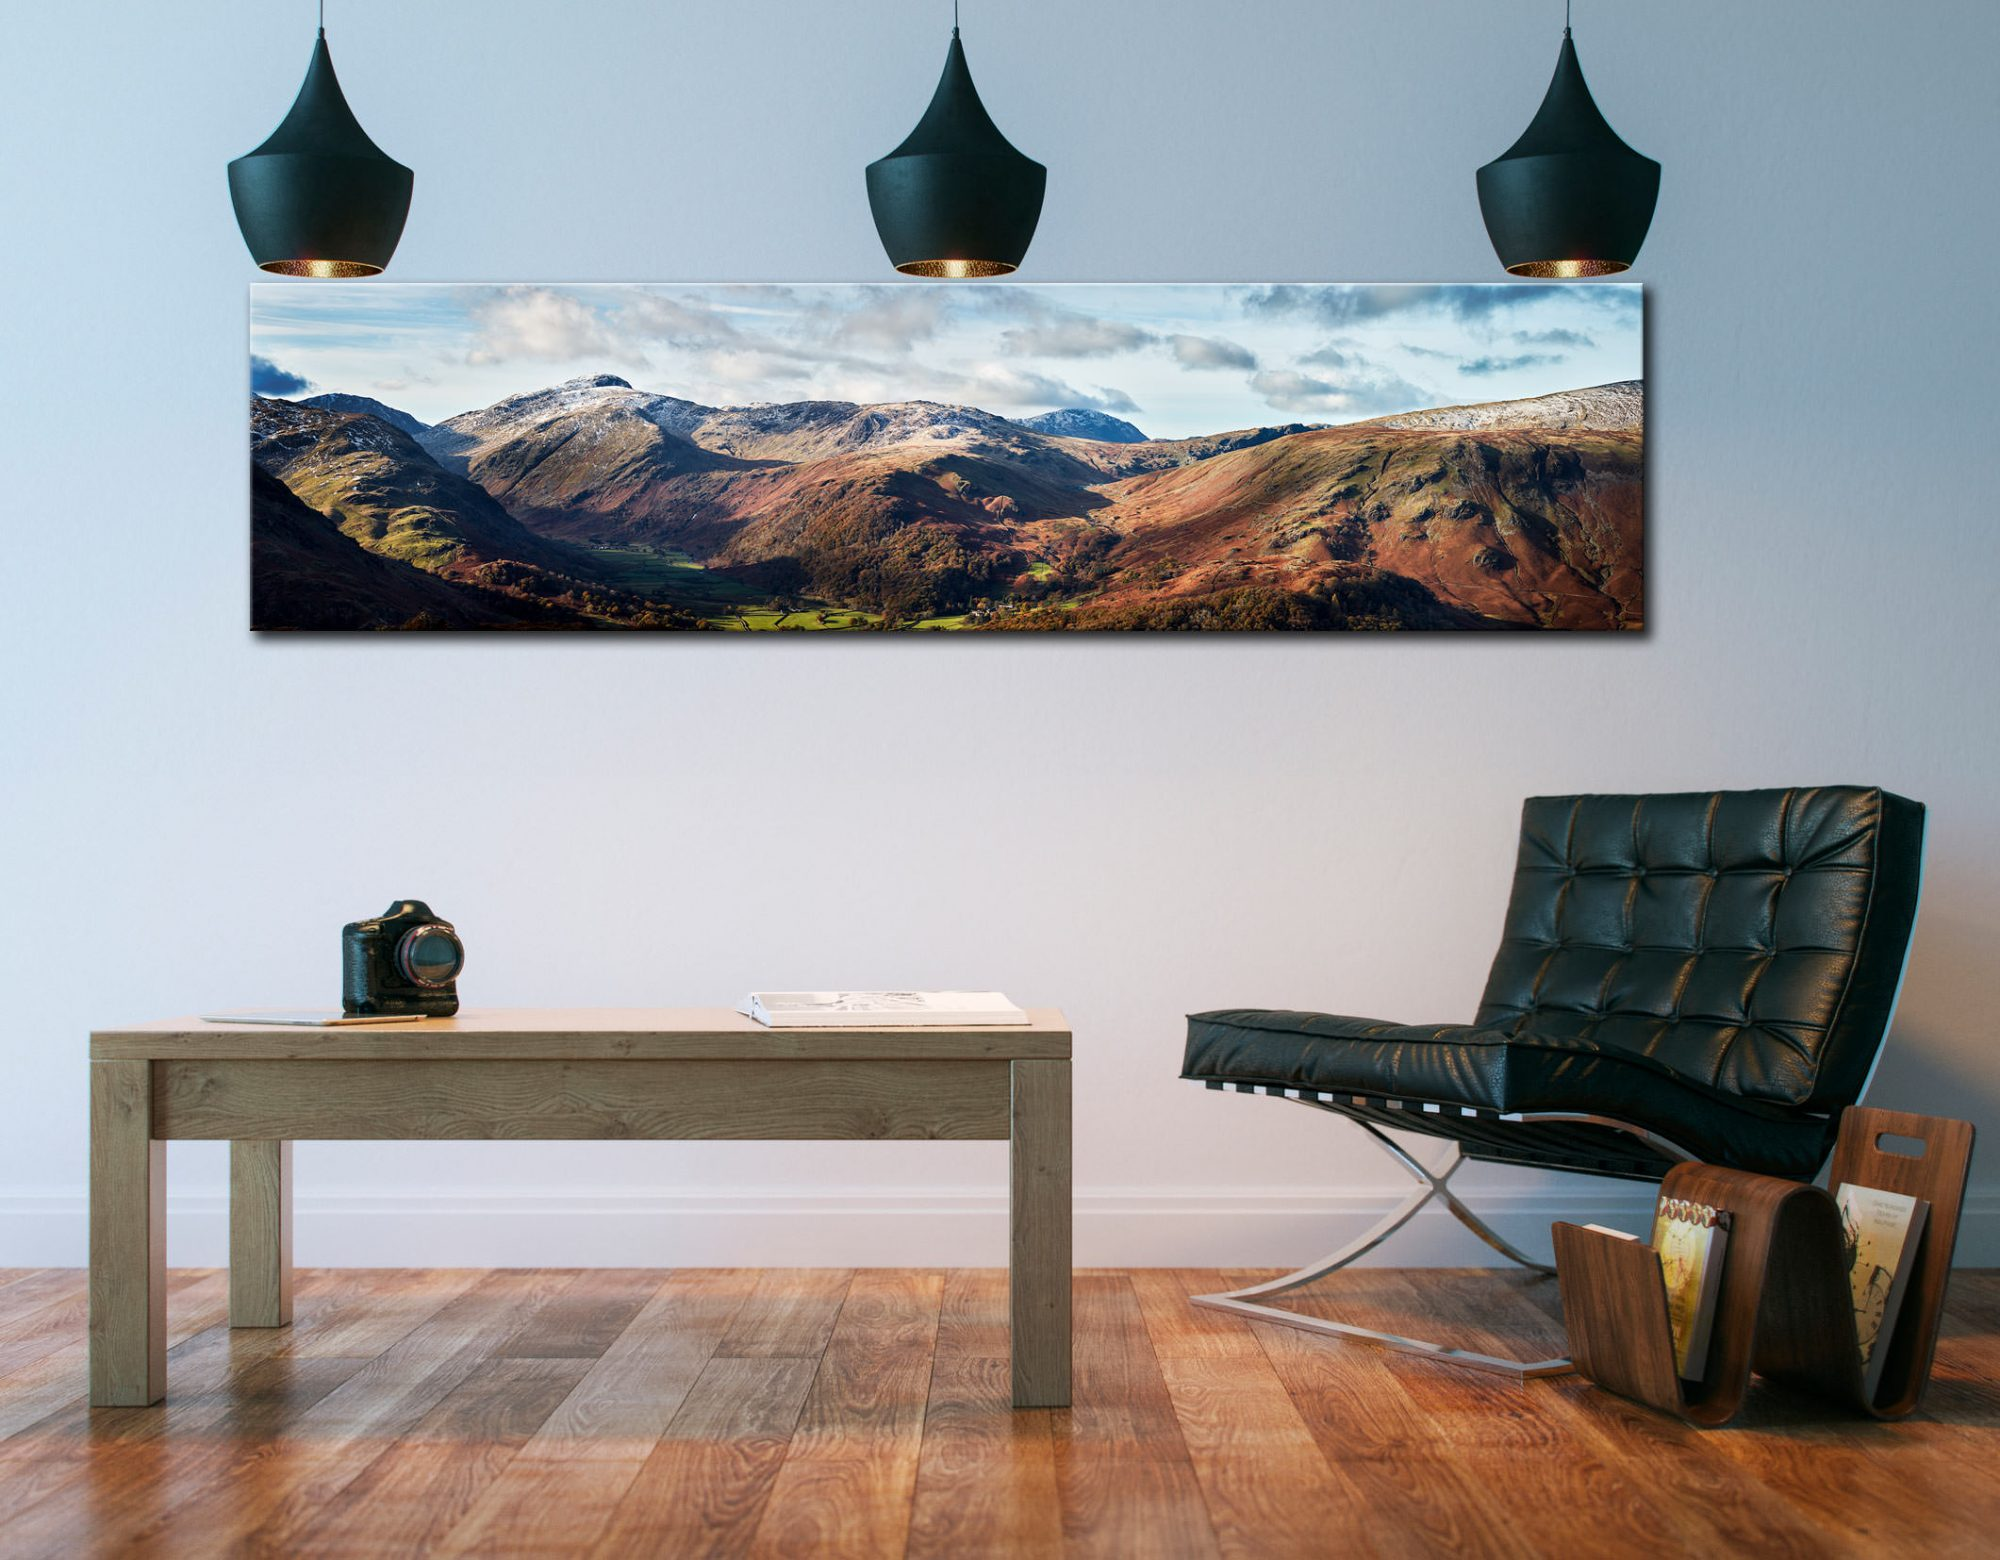 Borrowdale Mountains Panorama - Lake District Canvas on Wall